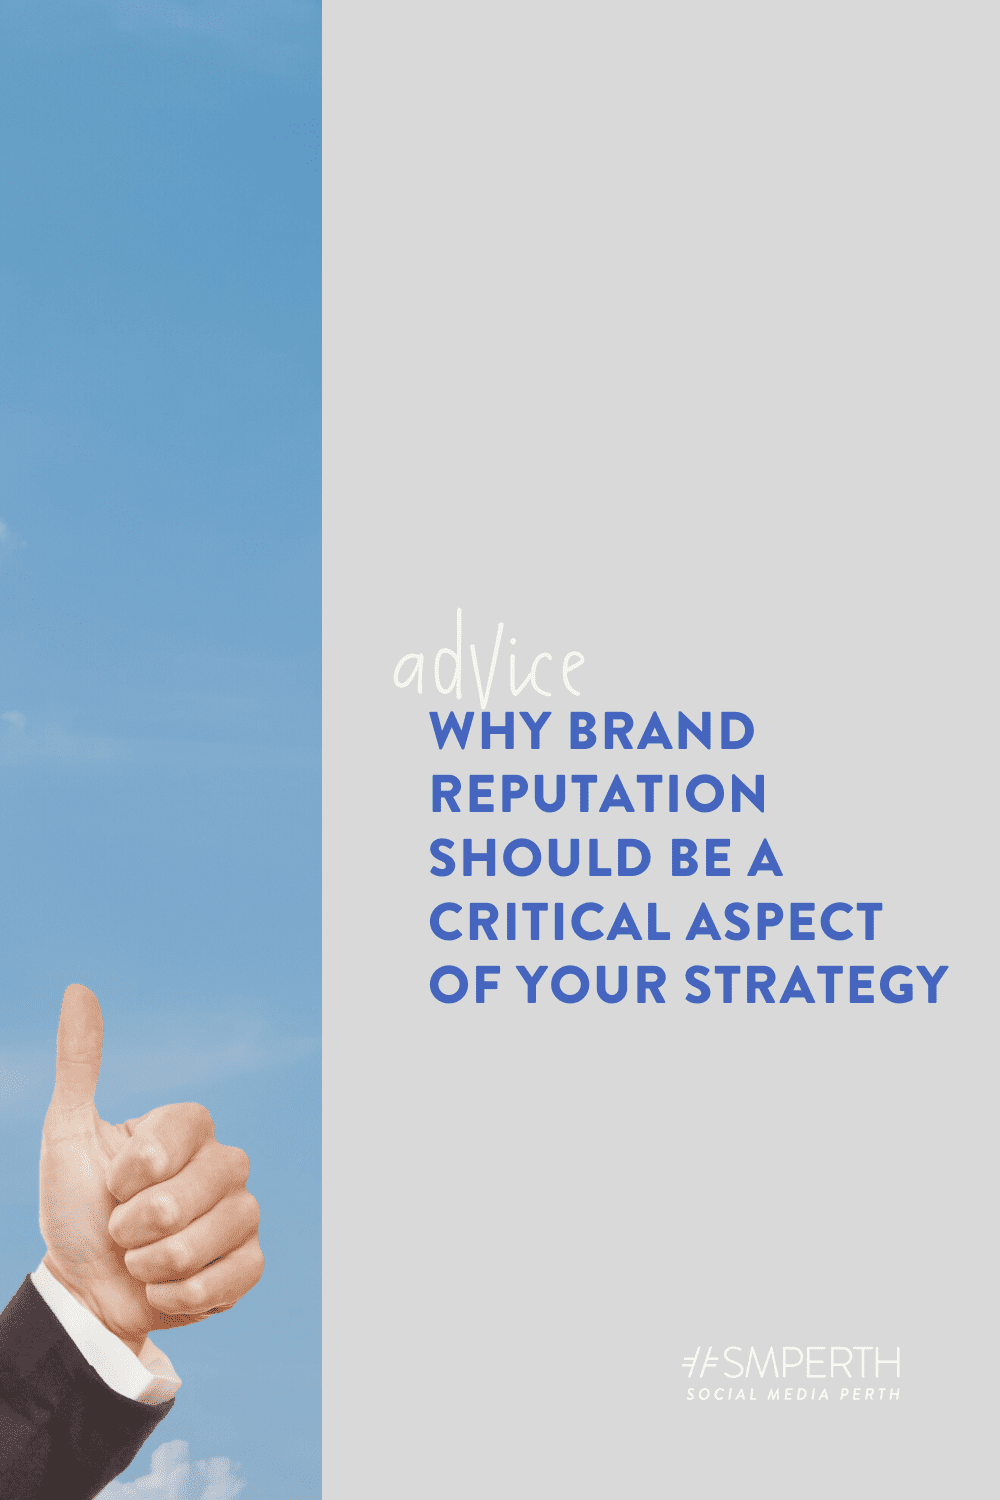 Why brand reputation should be a critical aspect of your market strategy